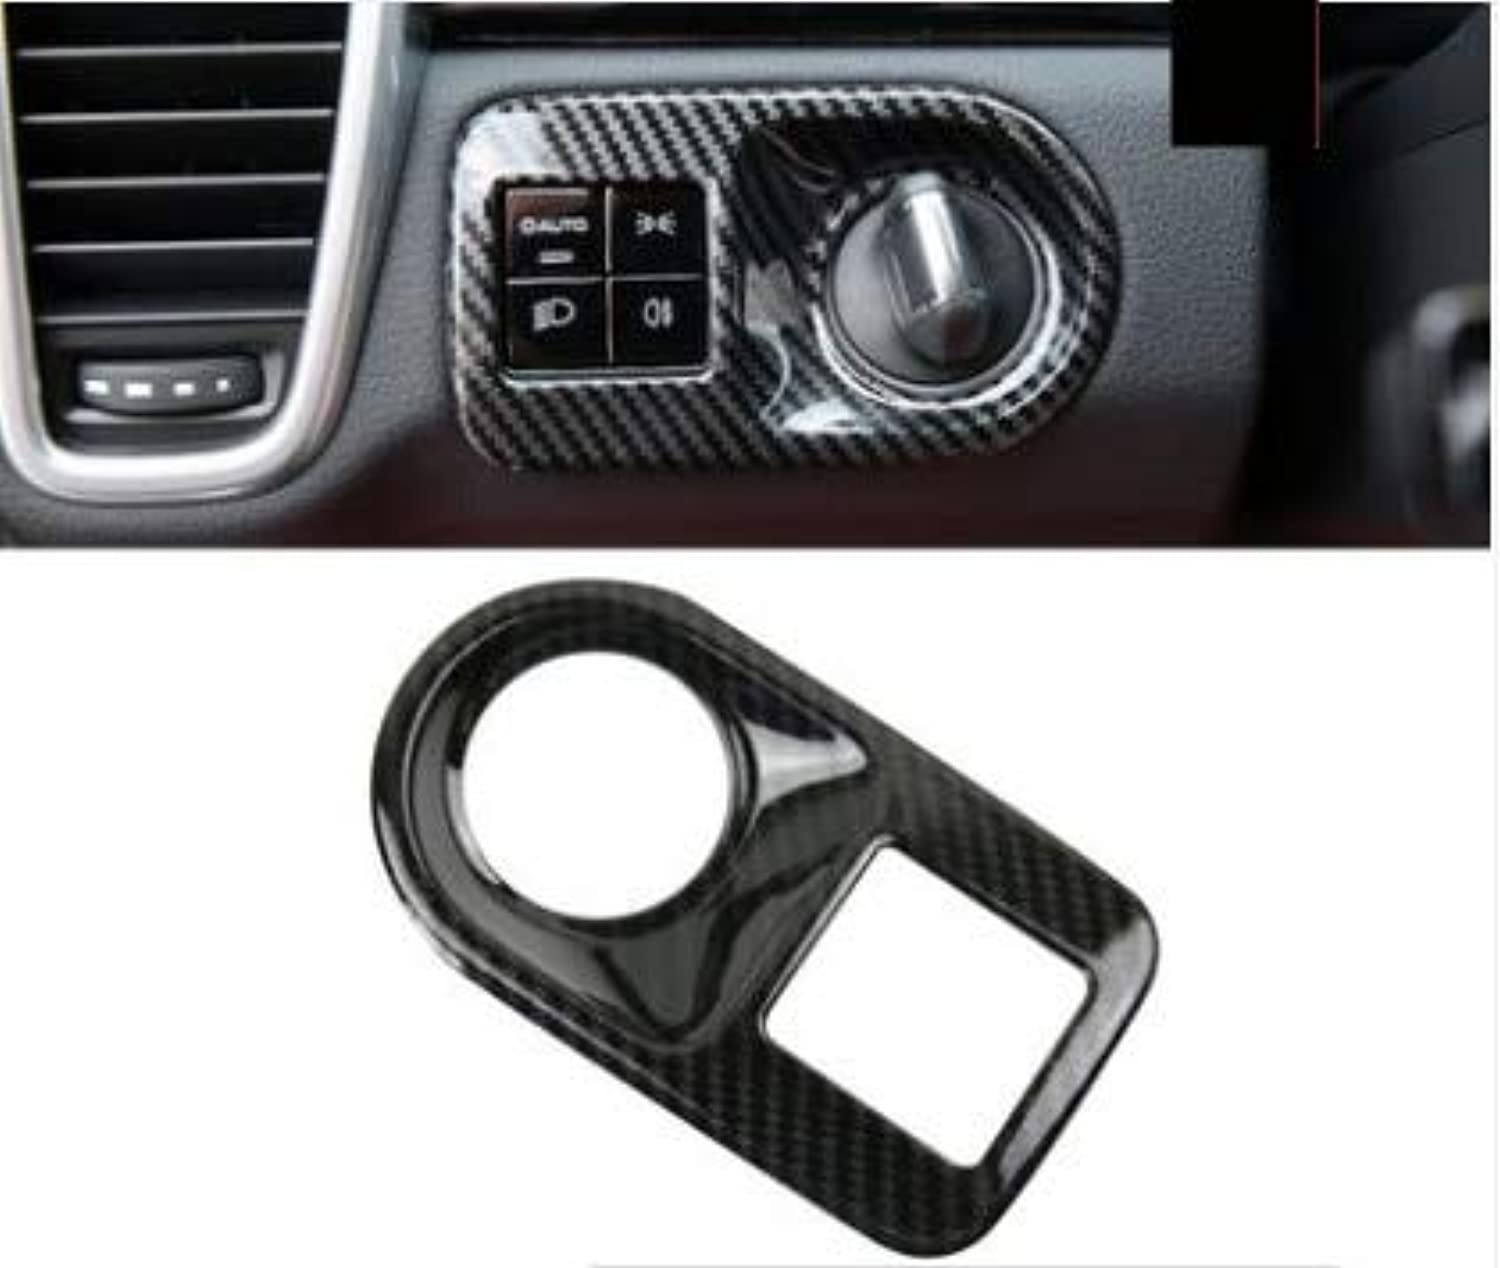 Car Styling for Porsche Cayenne 2018 2019 ABS Car Head Light Switch Frame Cover Internal Decoration Sequins Stickers Accessories  (color Name  Black)